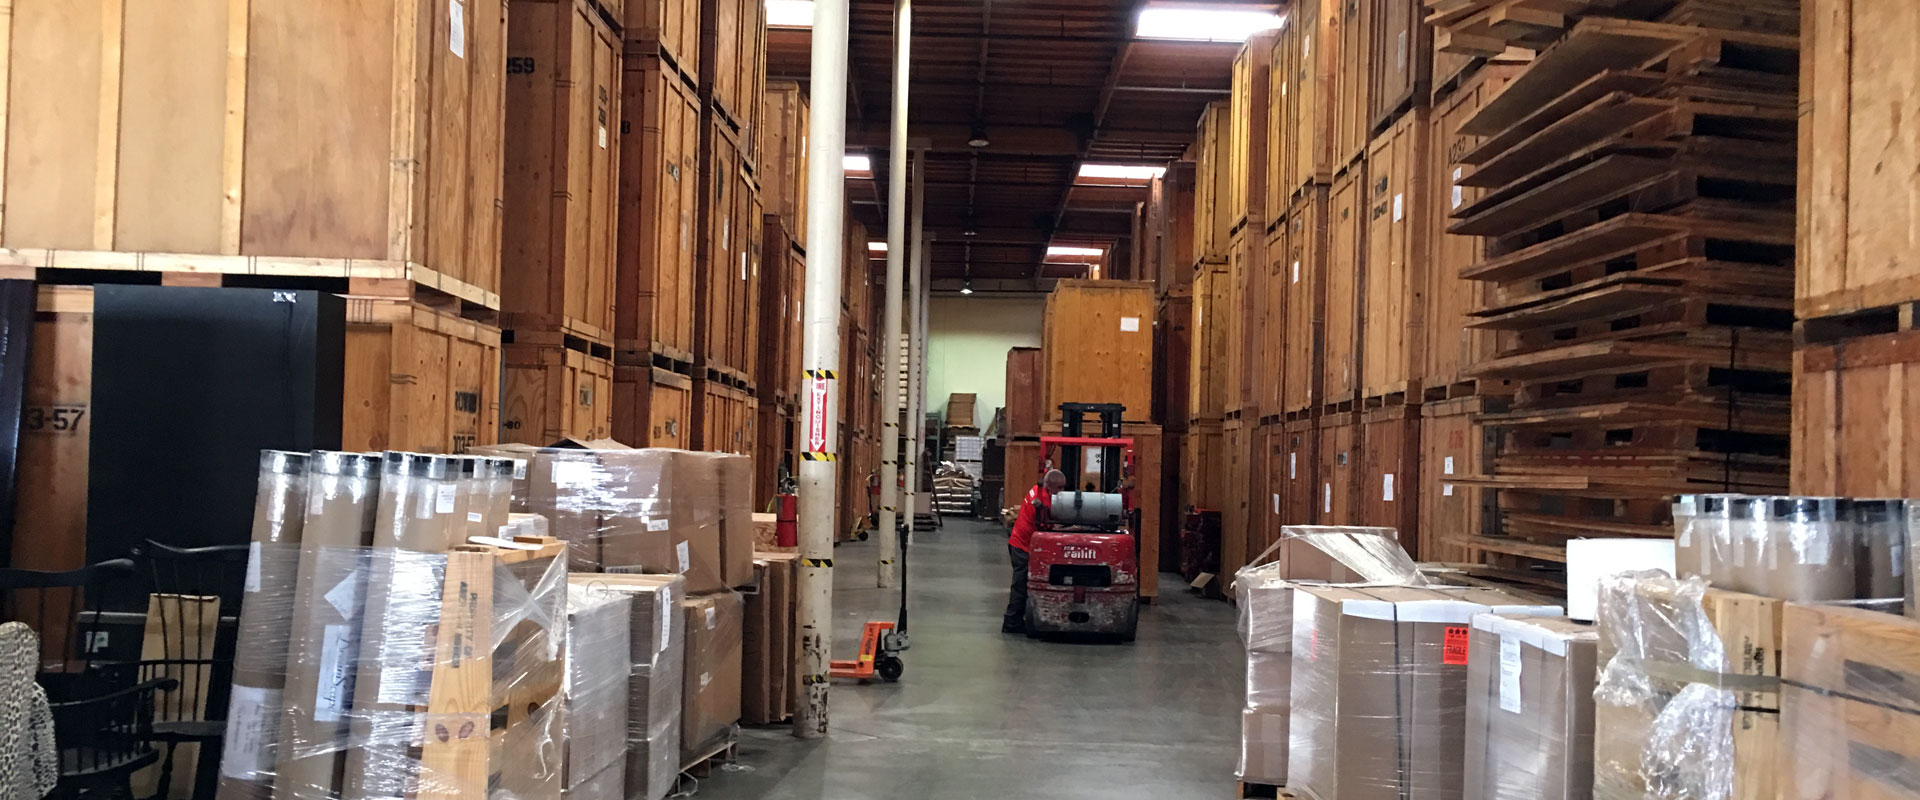 Factors to Consider Before Hiring A Self Storage Unit